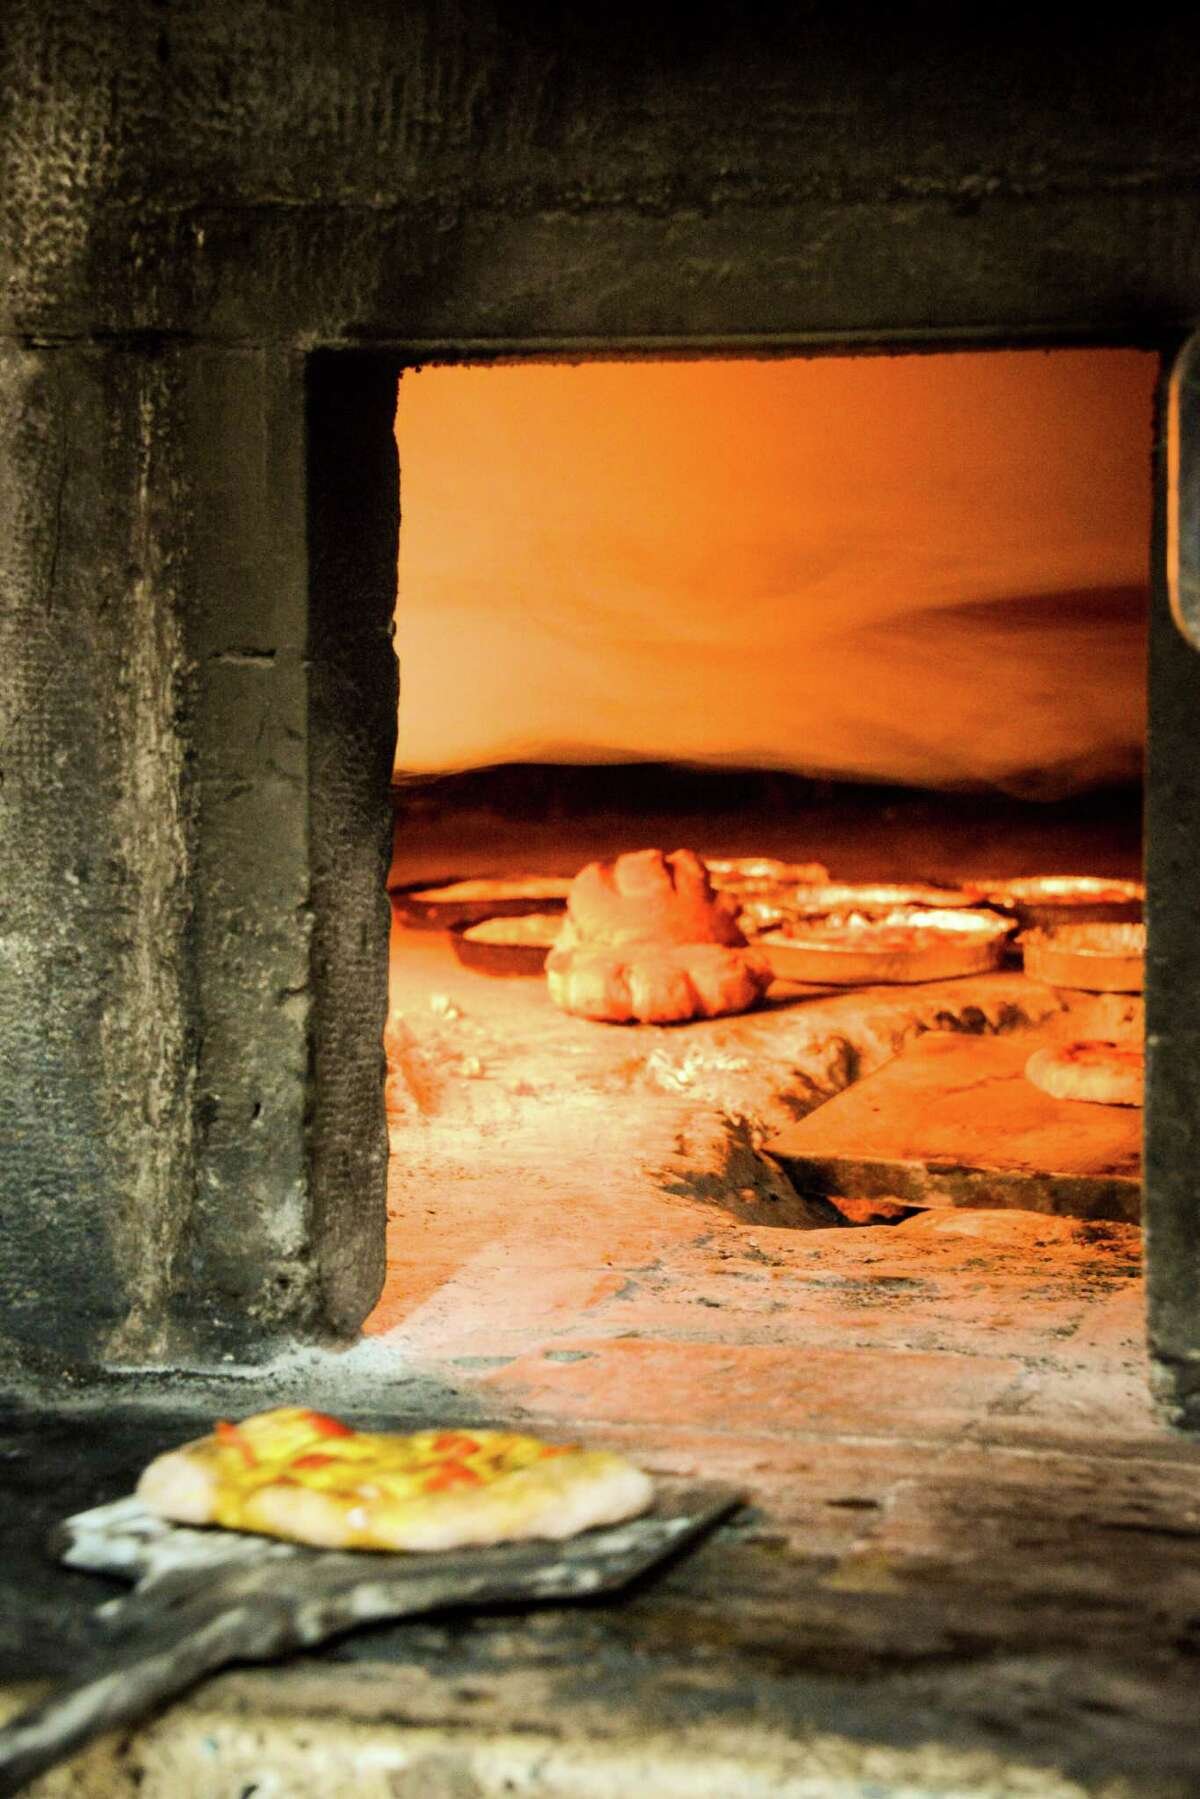 Bakeries with traditional oak-burning ovens are plentiful in Altamura.